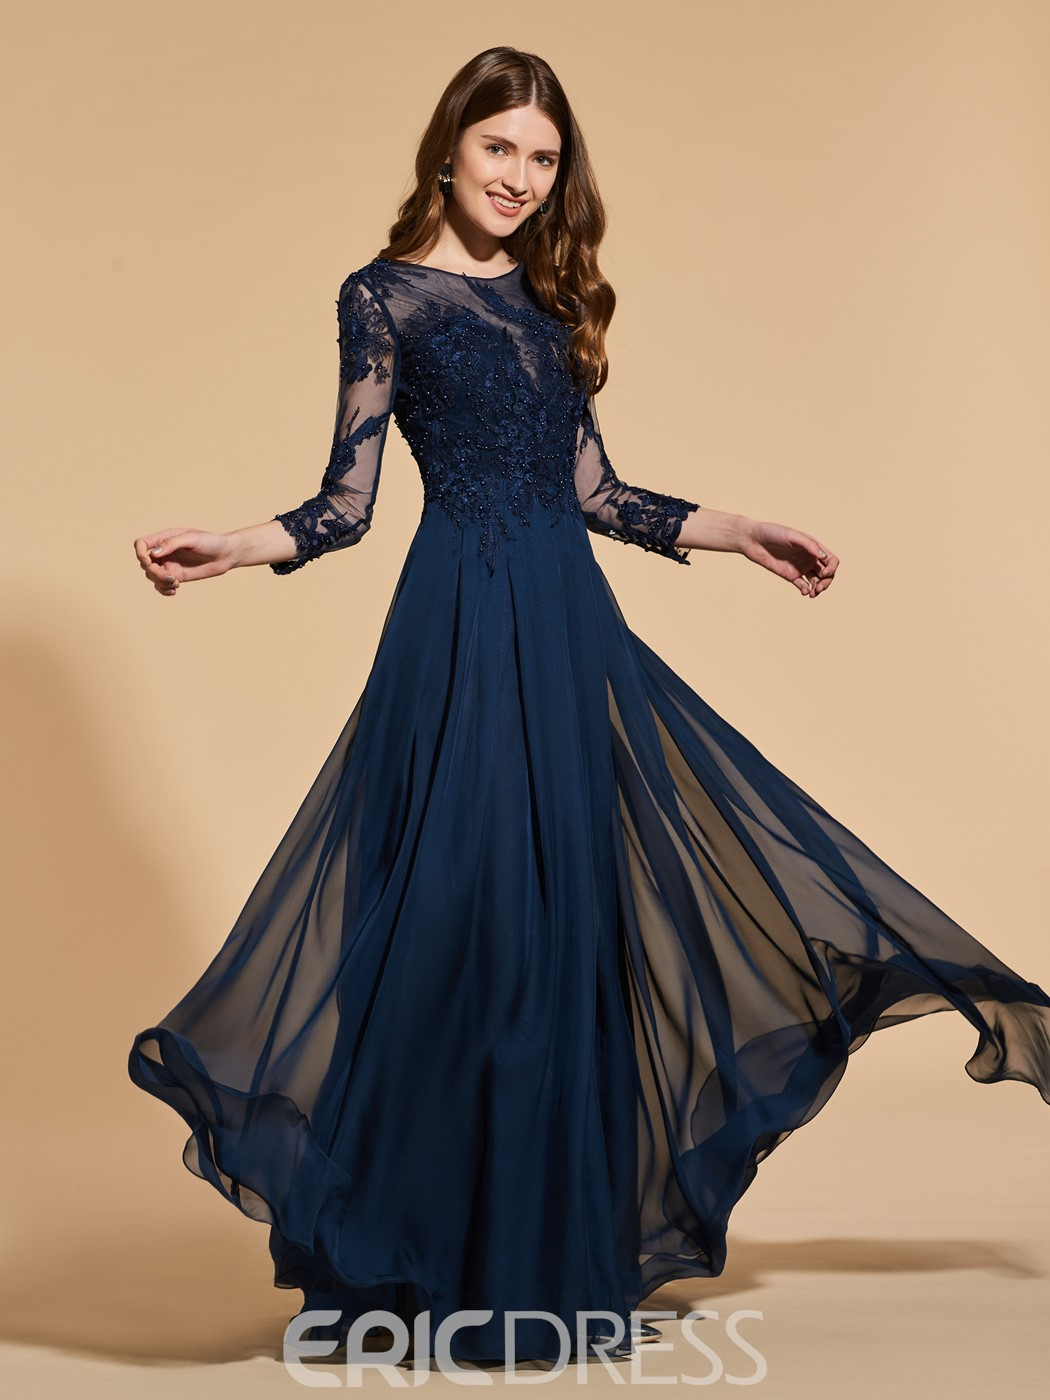 Ericdress A Line 3/4 Long Sleeve Dark Navy Prom Dress With Beadings